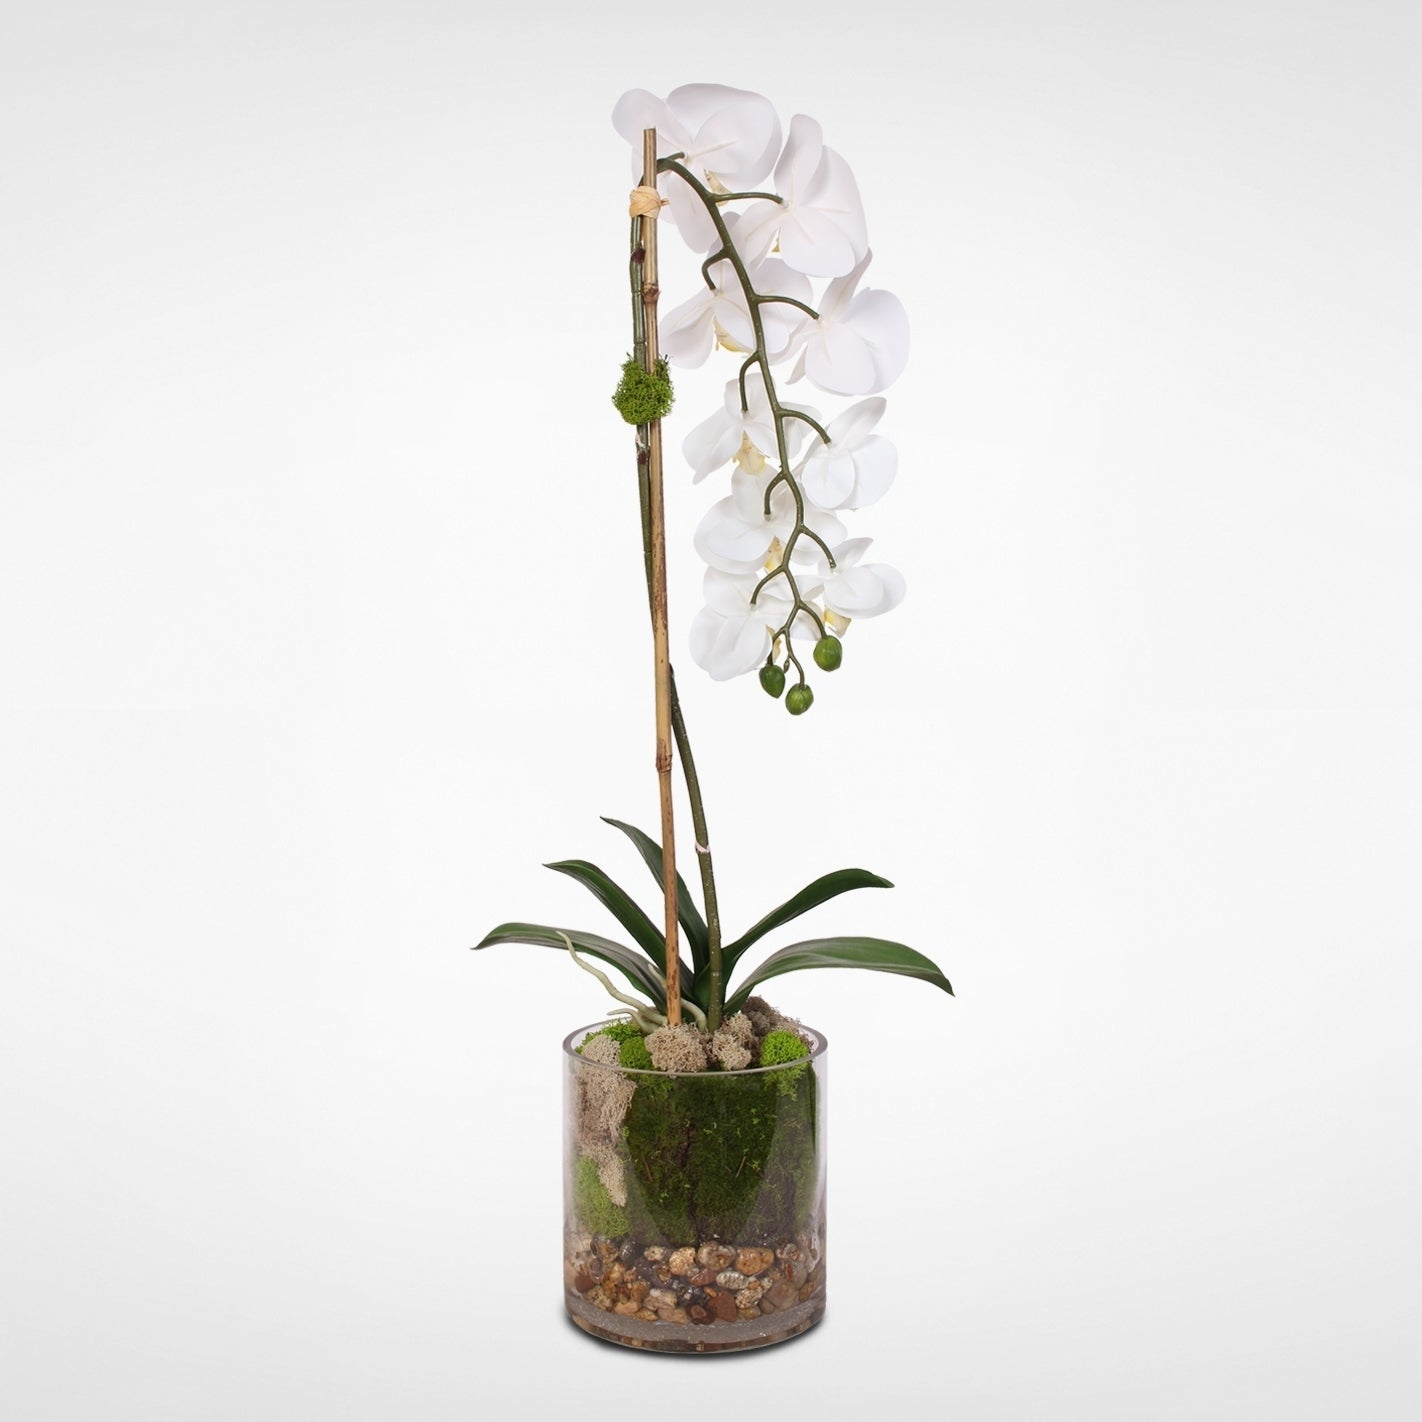 Real Touch White Phalaenopsis Orchid And Leaf In A Sleek